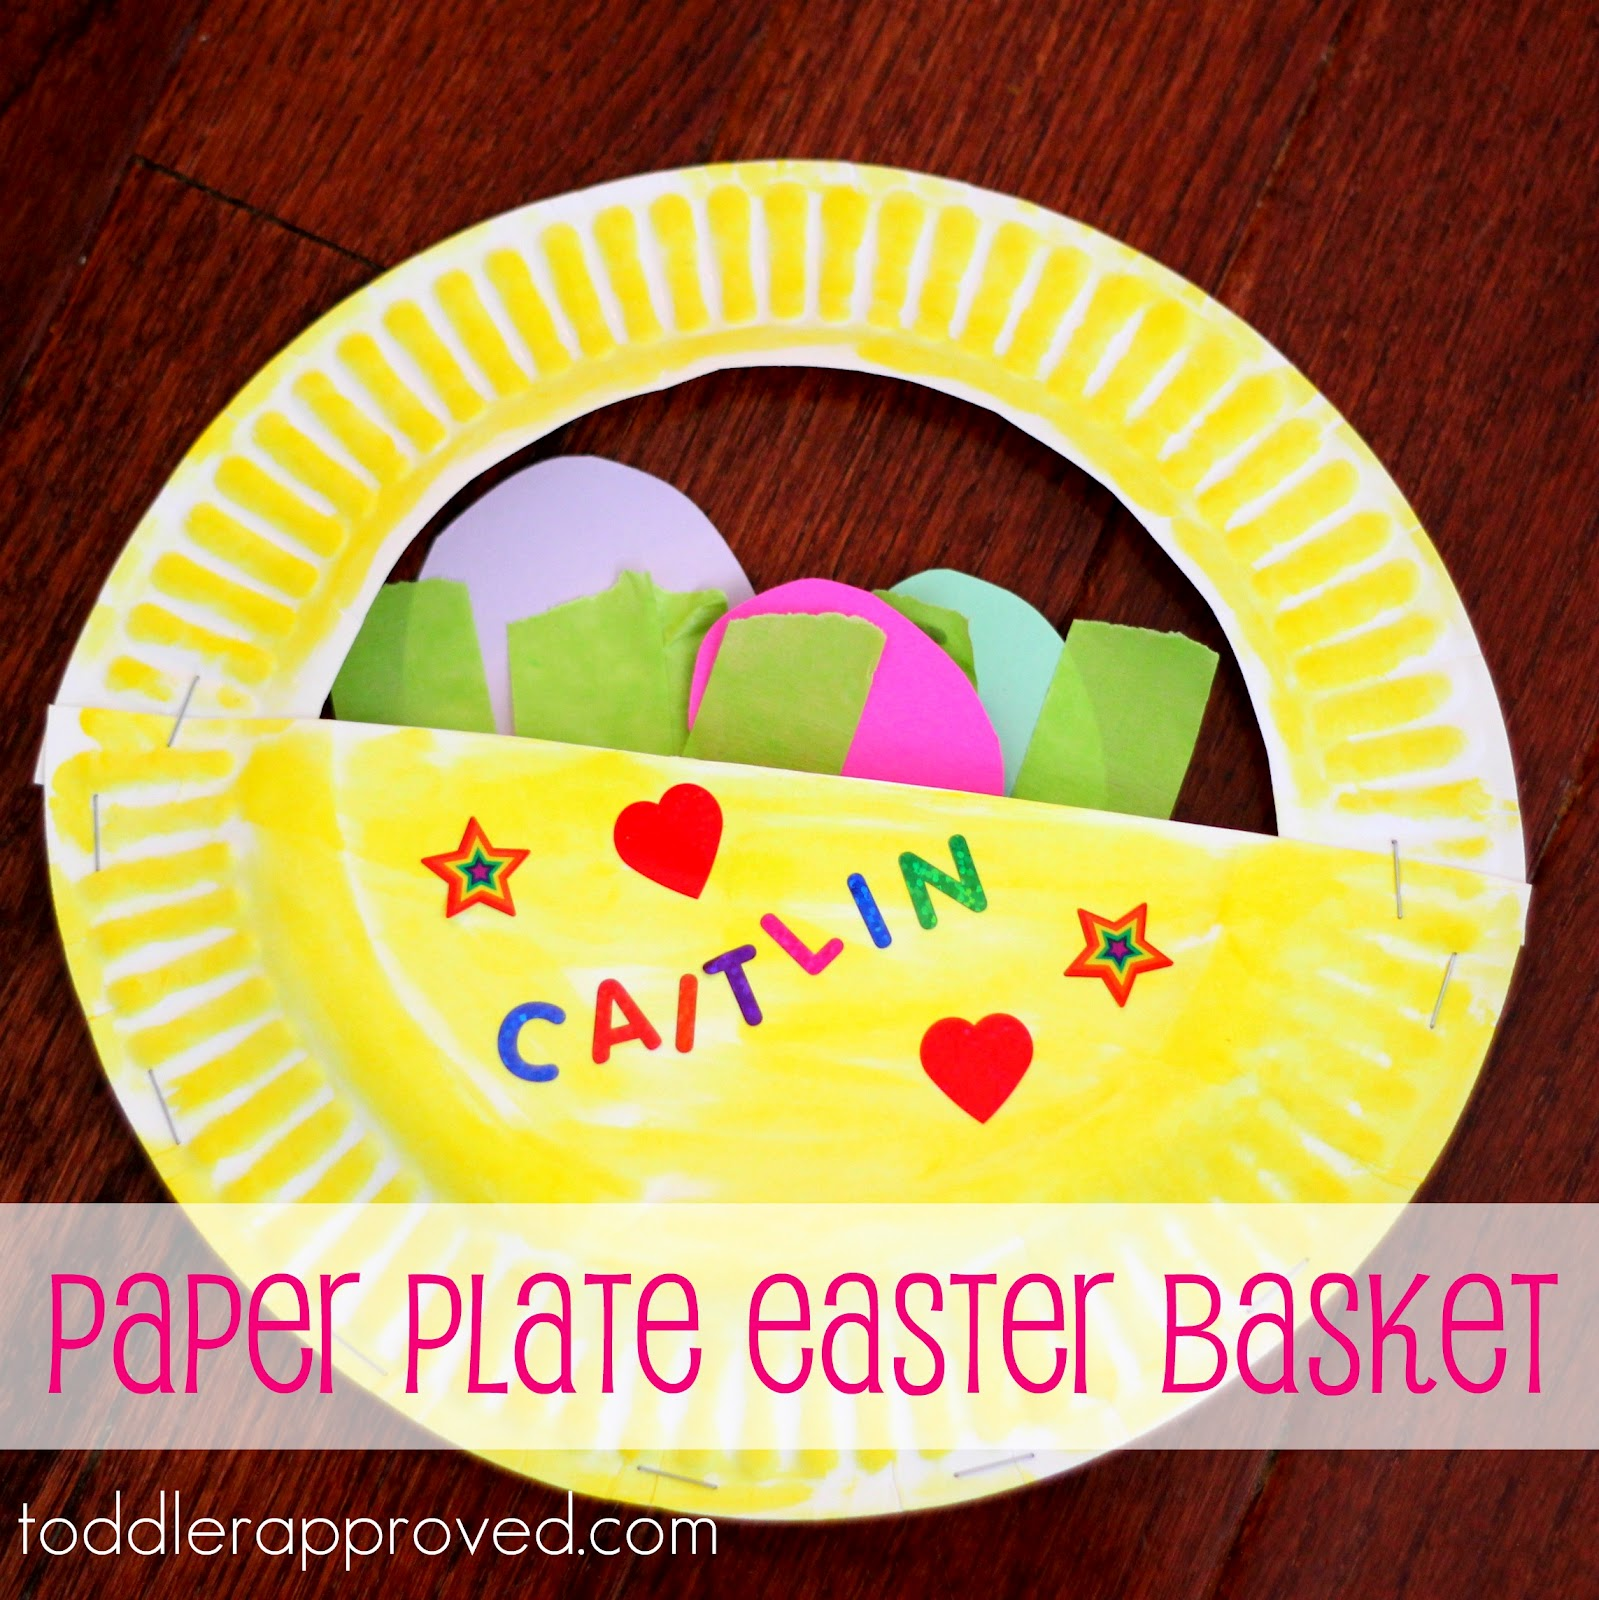 Toddler approved paper plate easter basket for Easy paper plate crafts